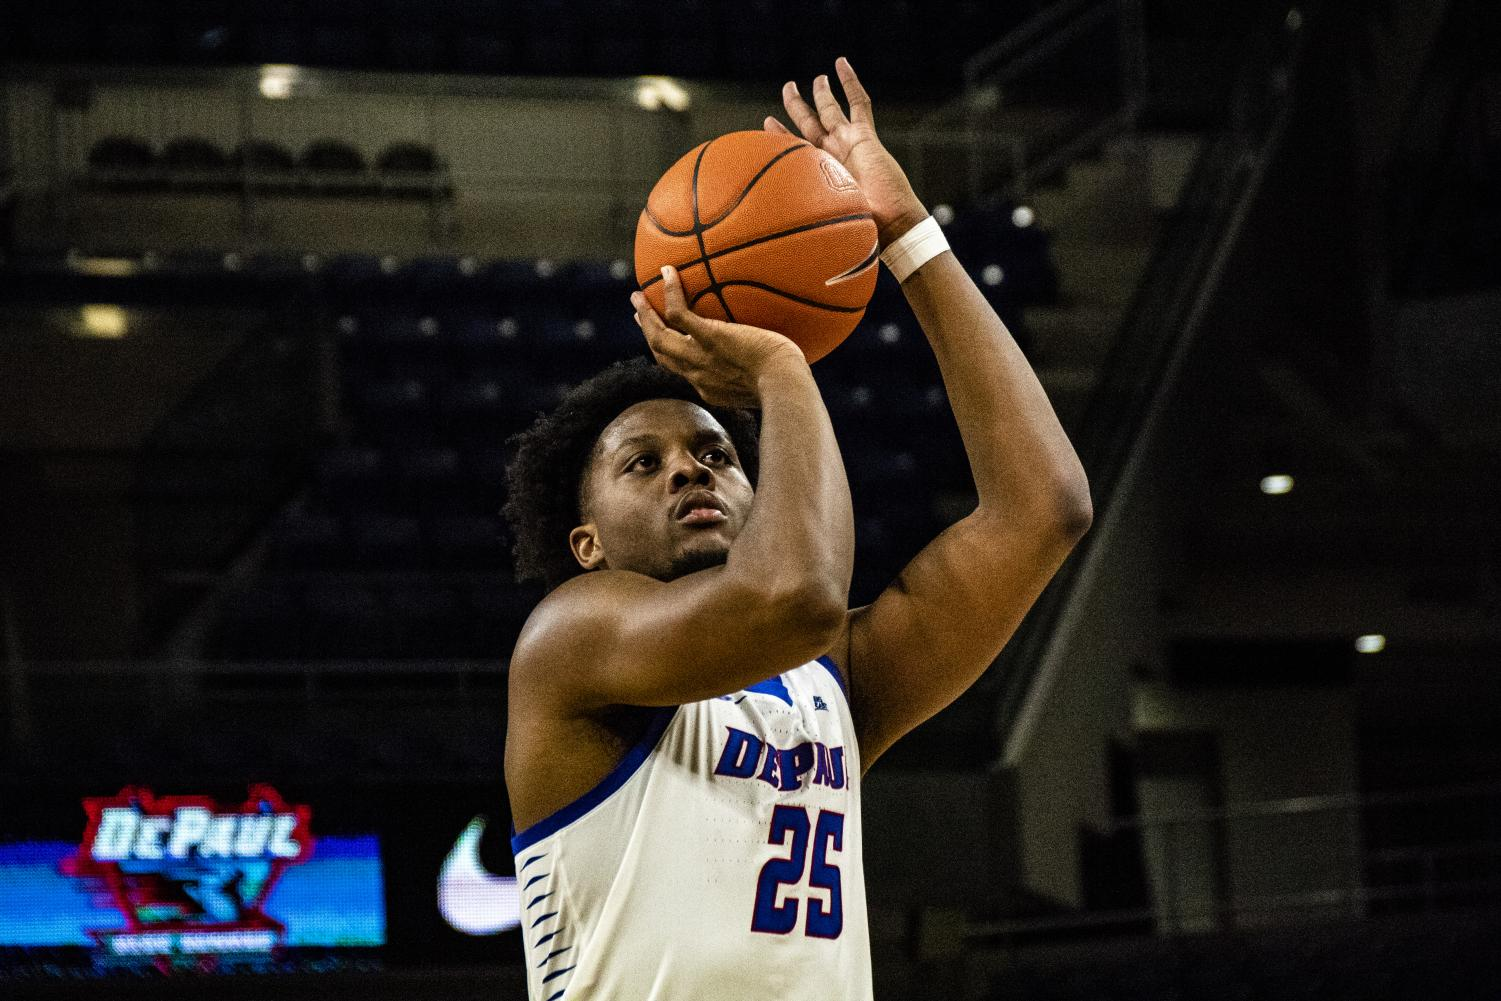 Senior forward Femi Olujobi locks in on a jumper during the Blue Demons 65-50 win against Florida A&M Monday night at Wintrust Arena. Richard Bodee I The DePaulia